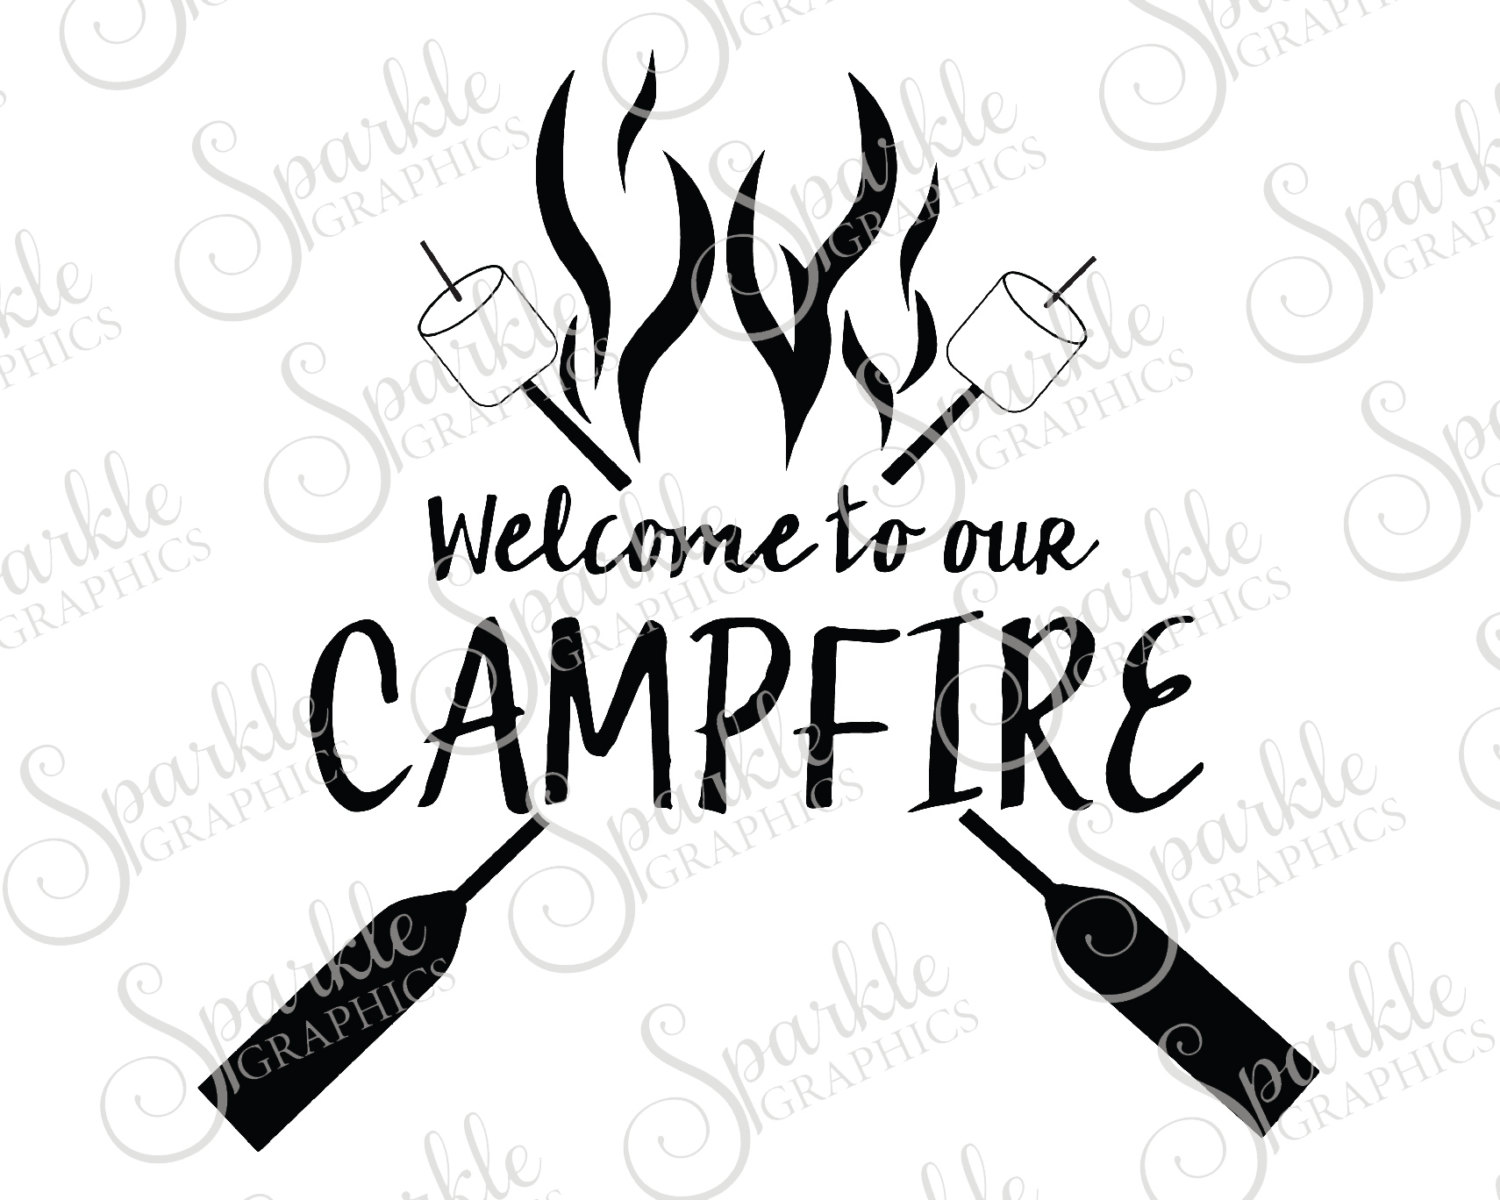 Campfire clipart silhouette. Welcome to our cummer